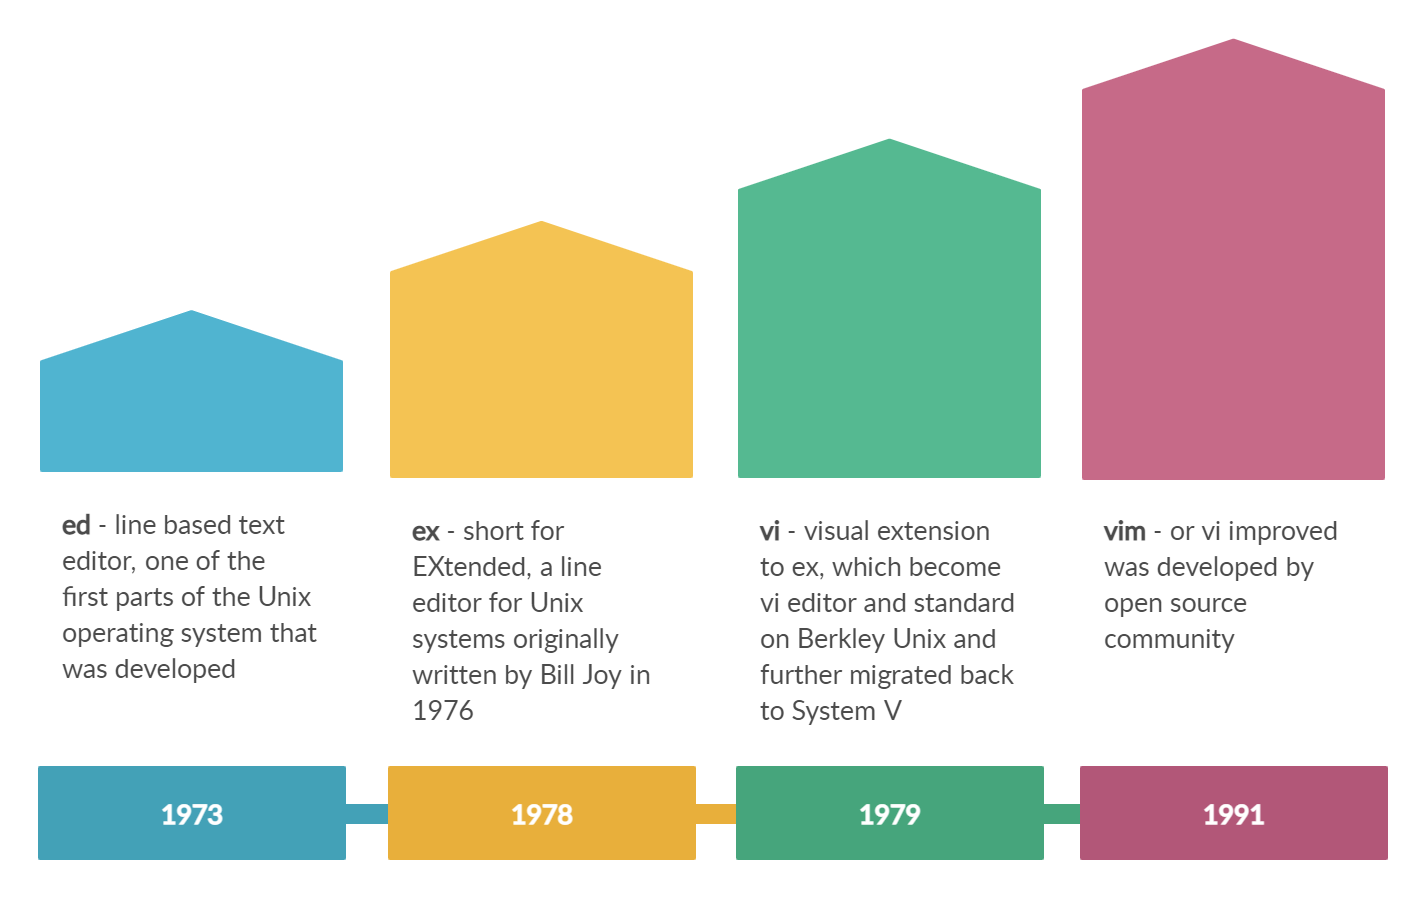 Vi editor and its predecessors - historical timeline